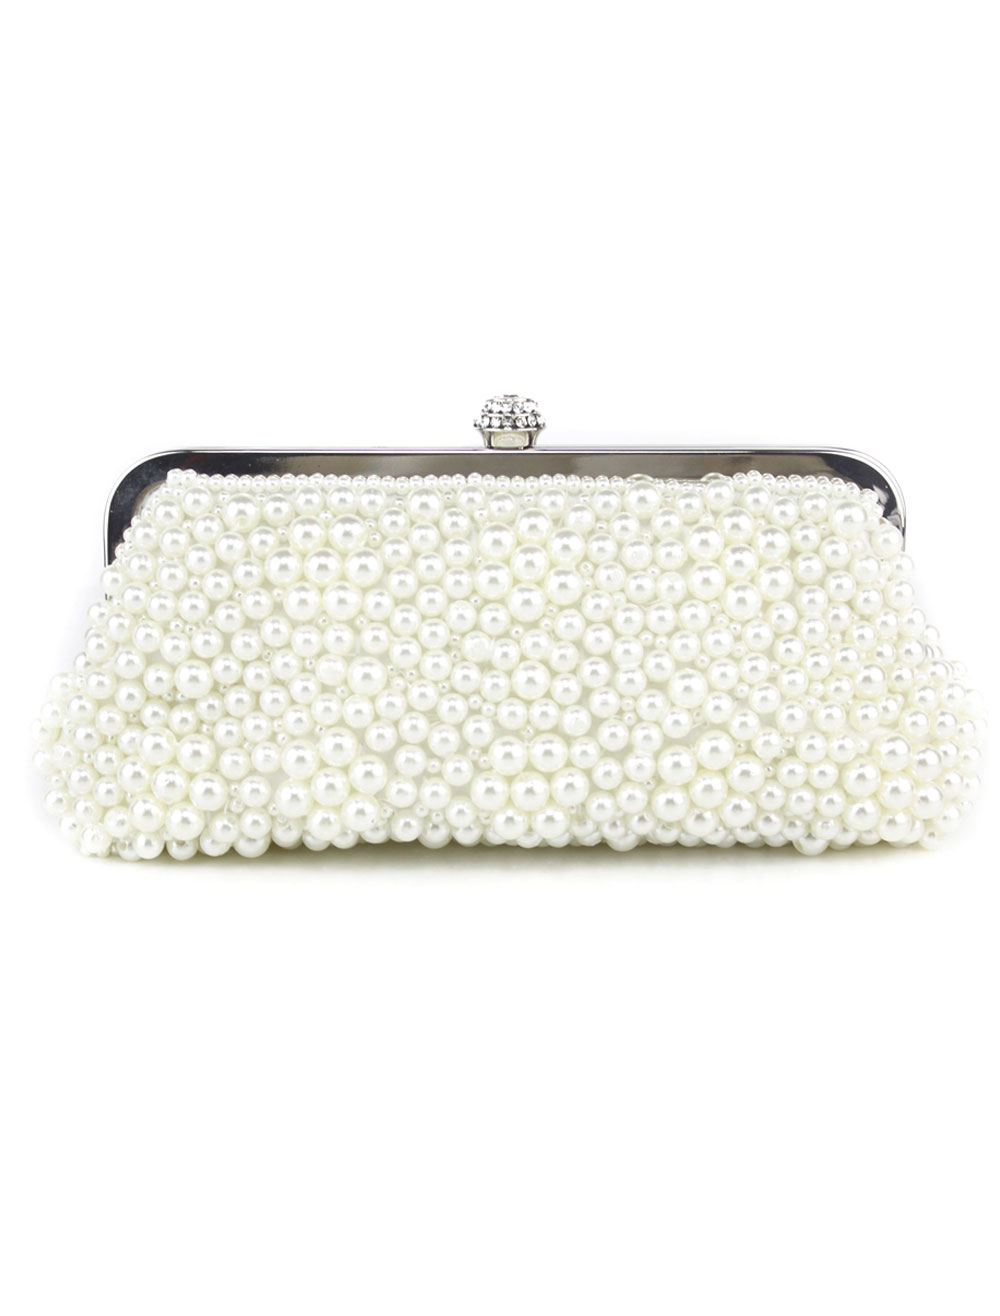 Buy Beautiful Glitter Ecru White Beaded Evening Bag for Woman for $40.49 in Milanoo store